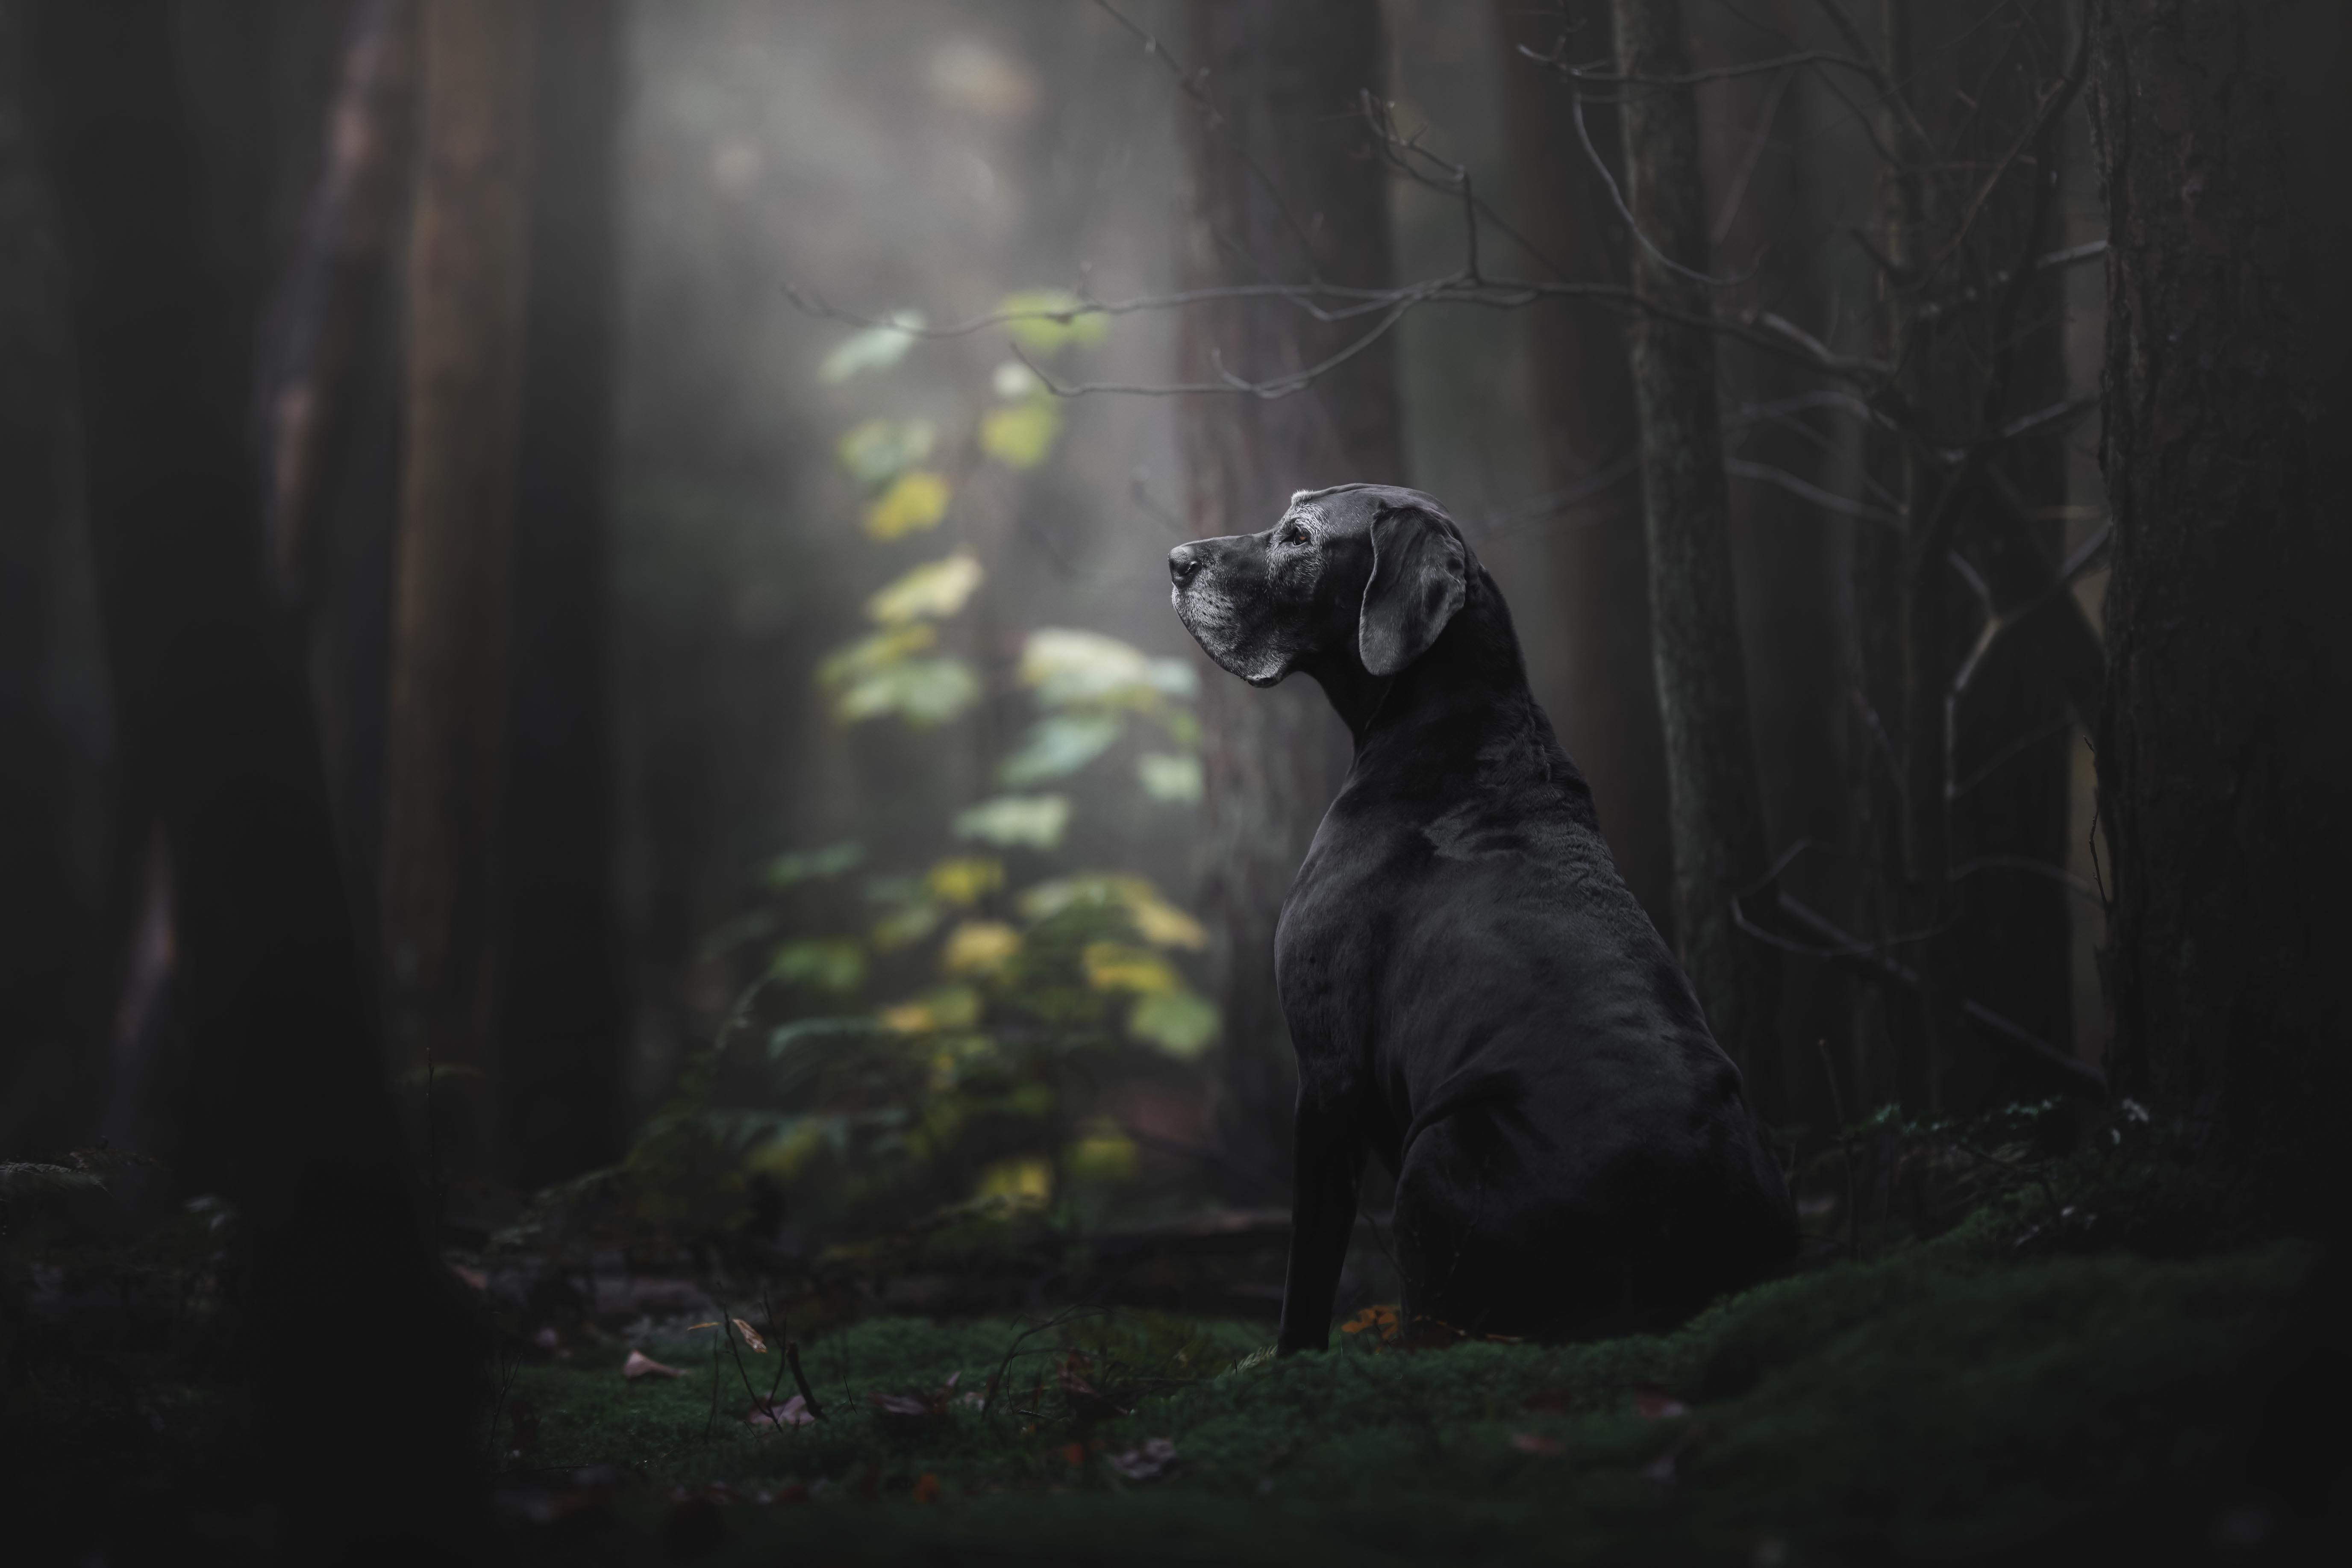 "<strong>First Place and Overall Winner</strong><br>""The Lady of the Mystery Forest""<br>Noa, Great Dane, Netherlands"